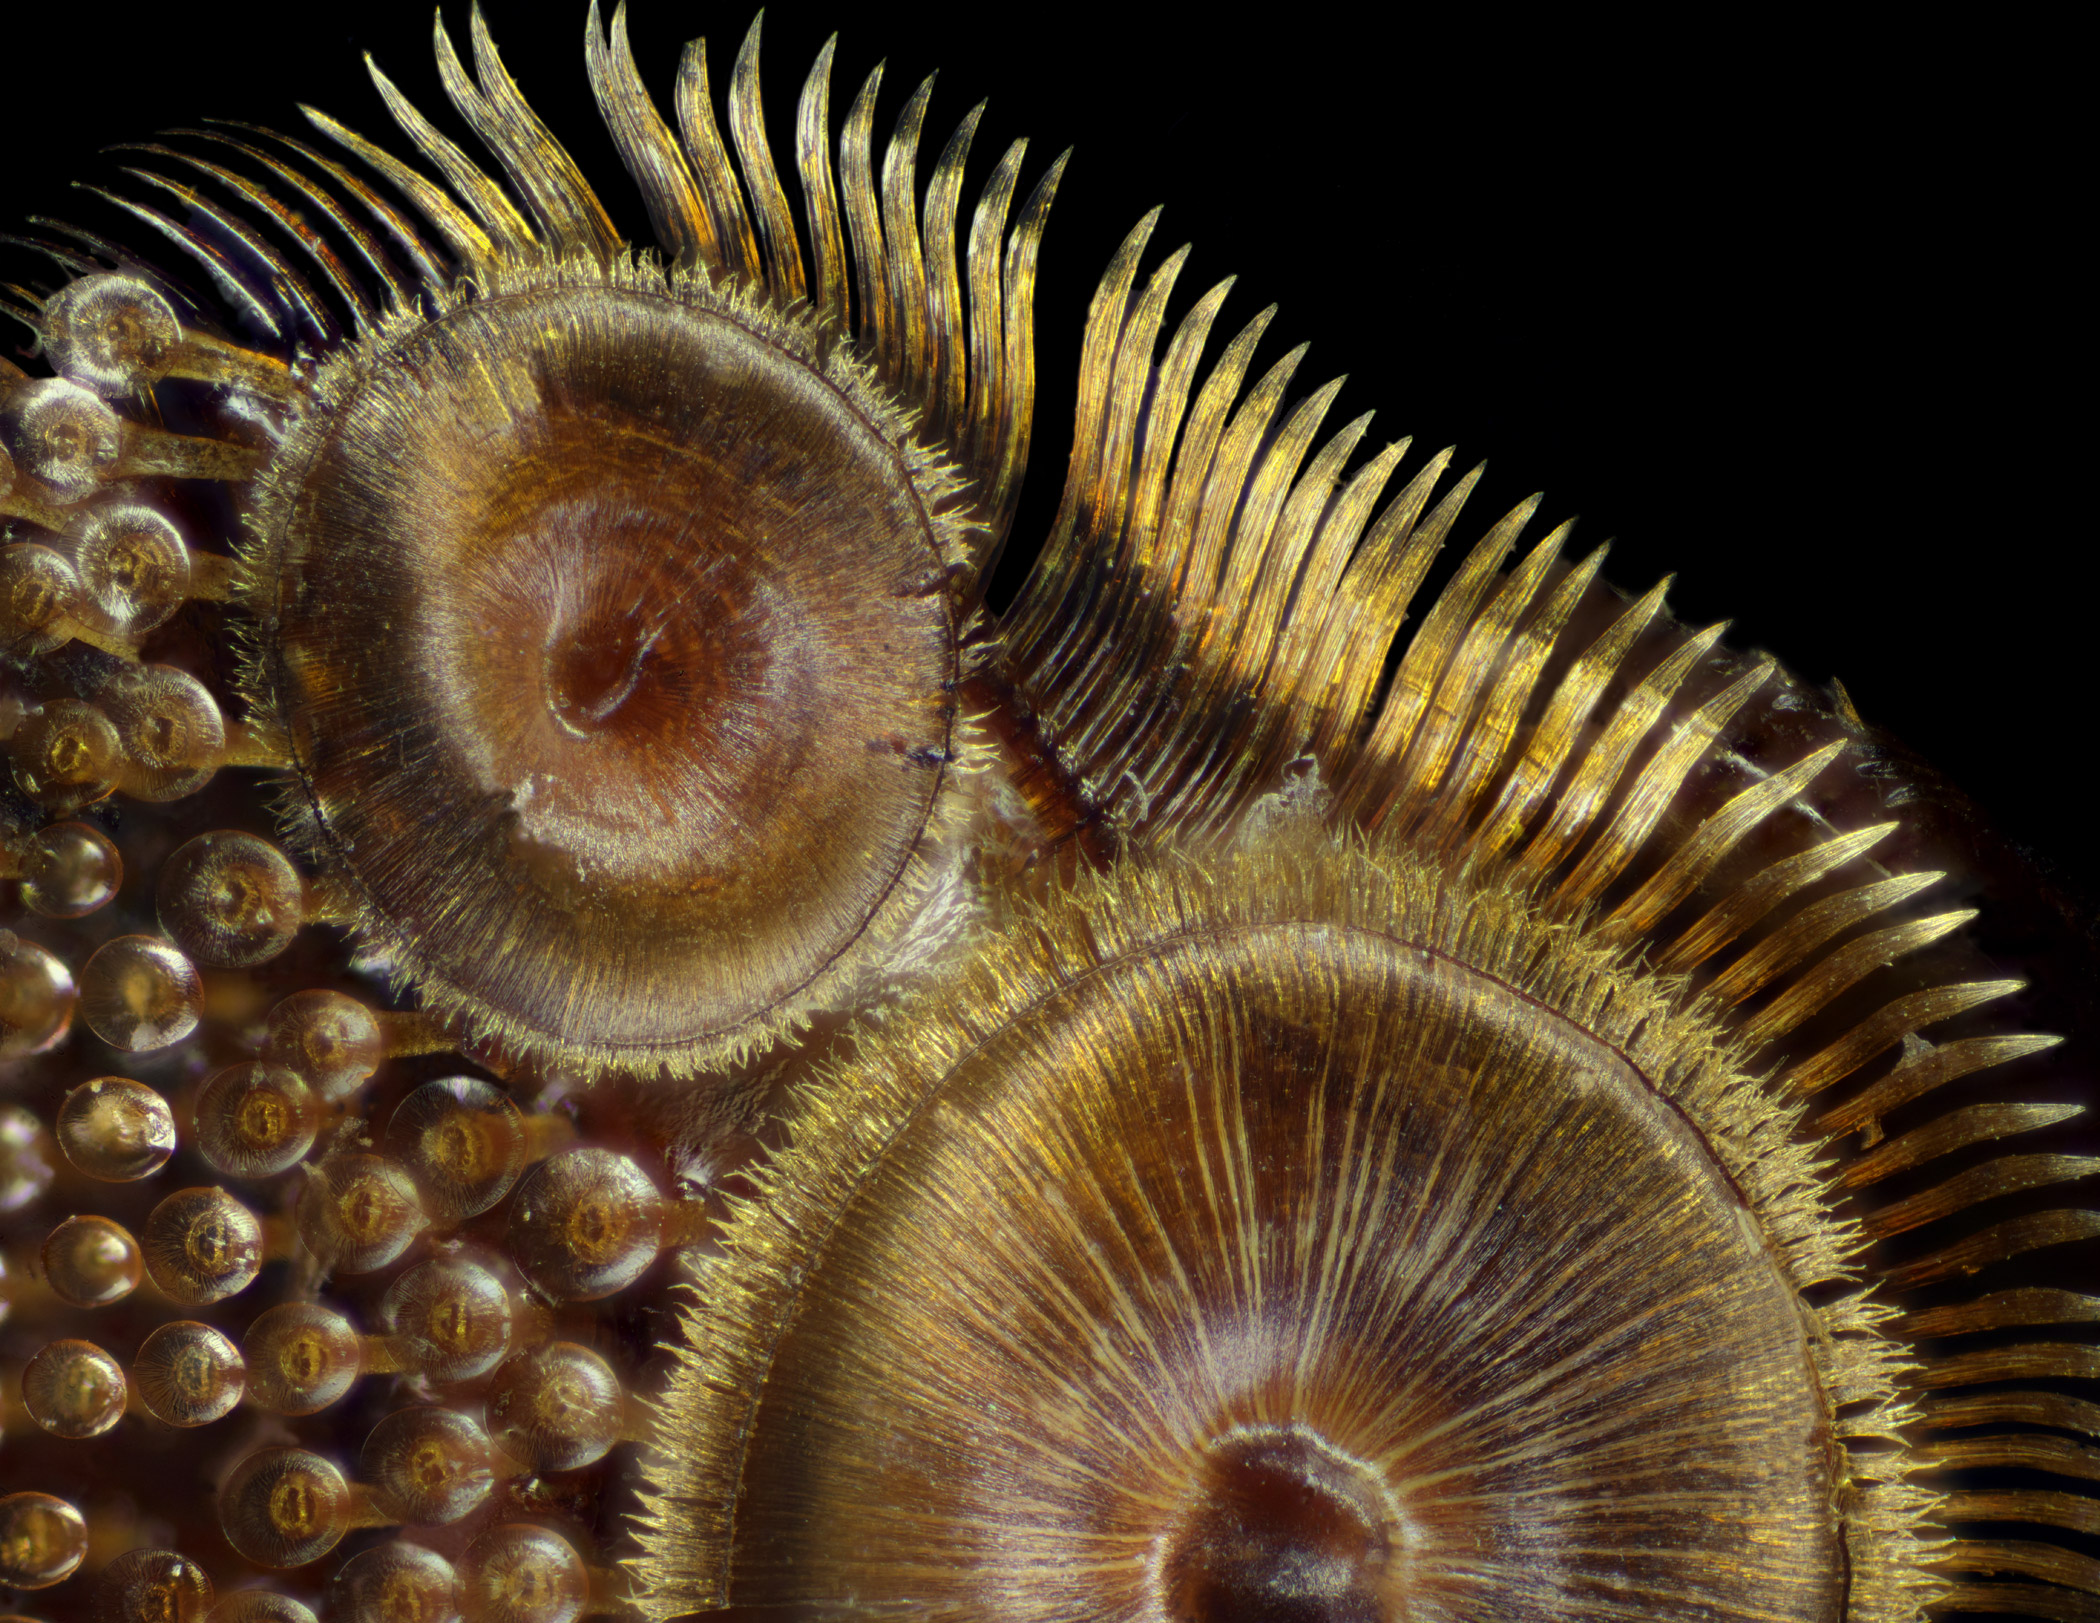 Suction cups on the diving beetle (Dytiscus sp.) foreleg at 50x magnification.